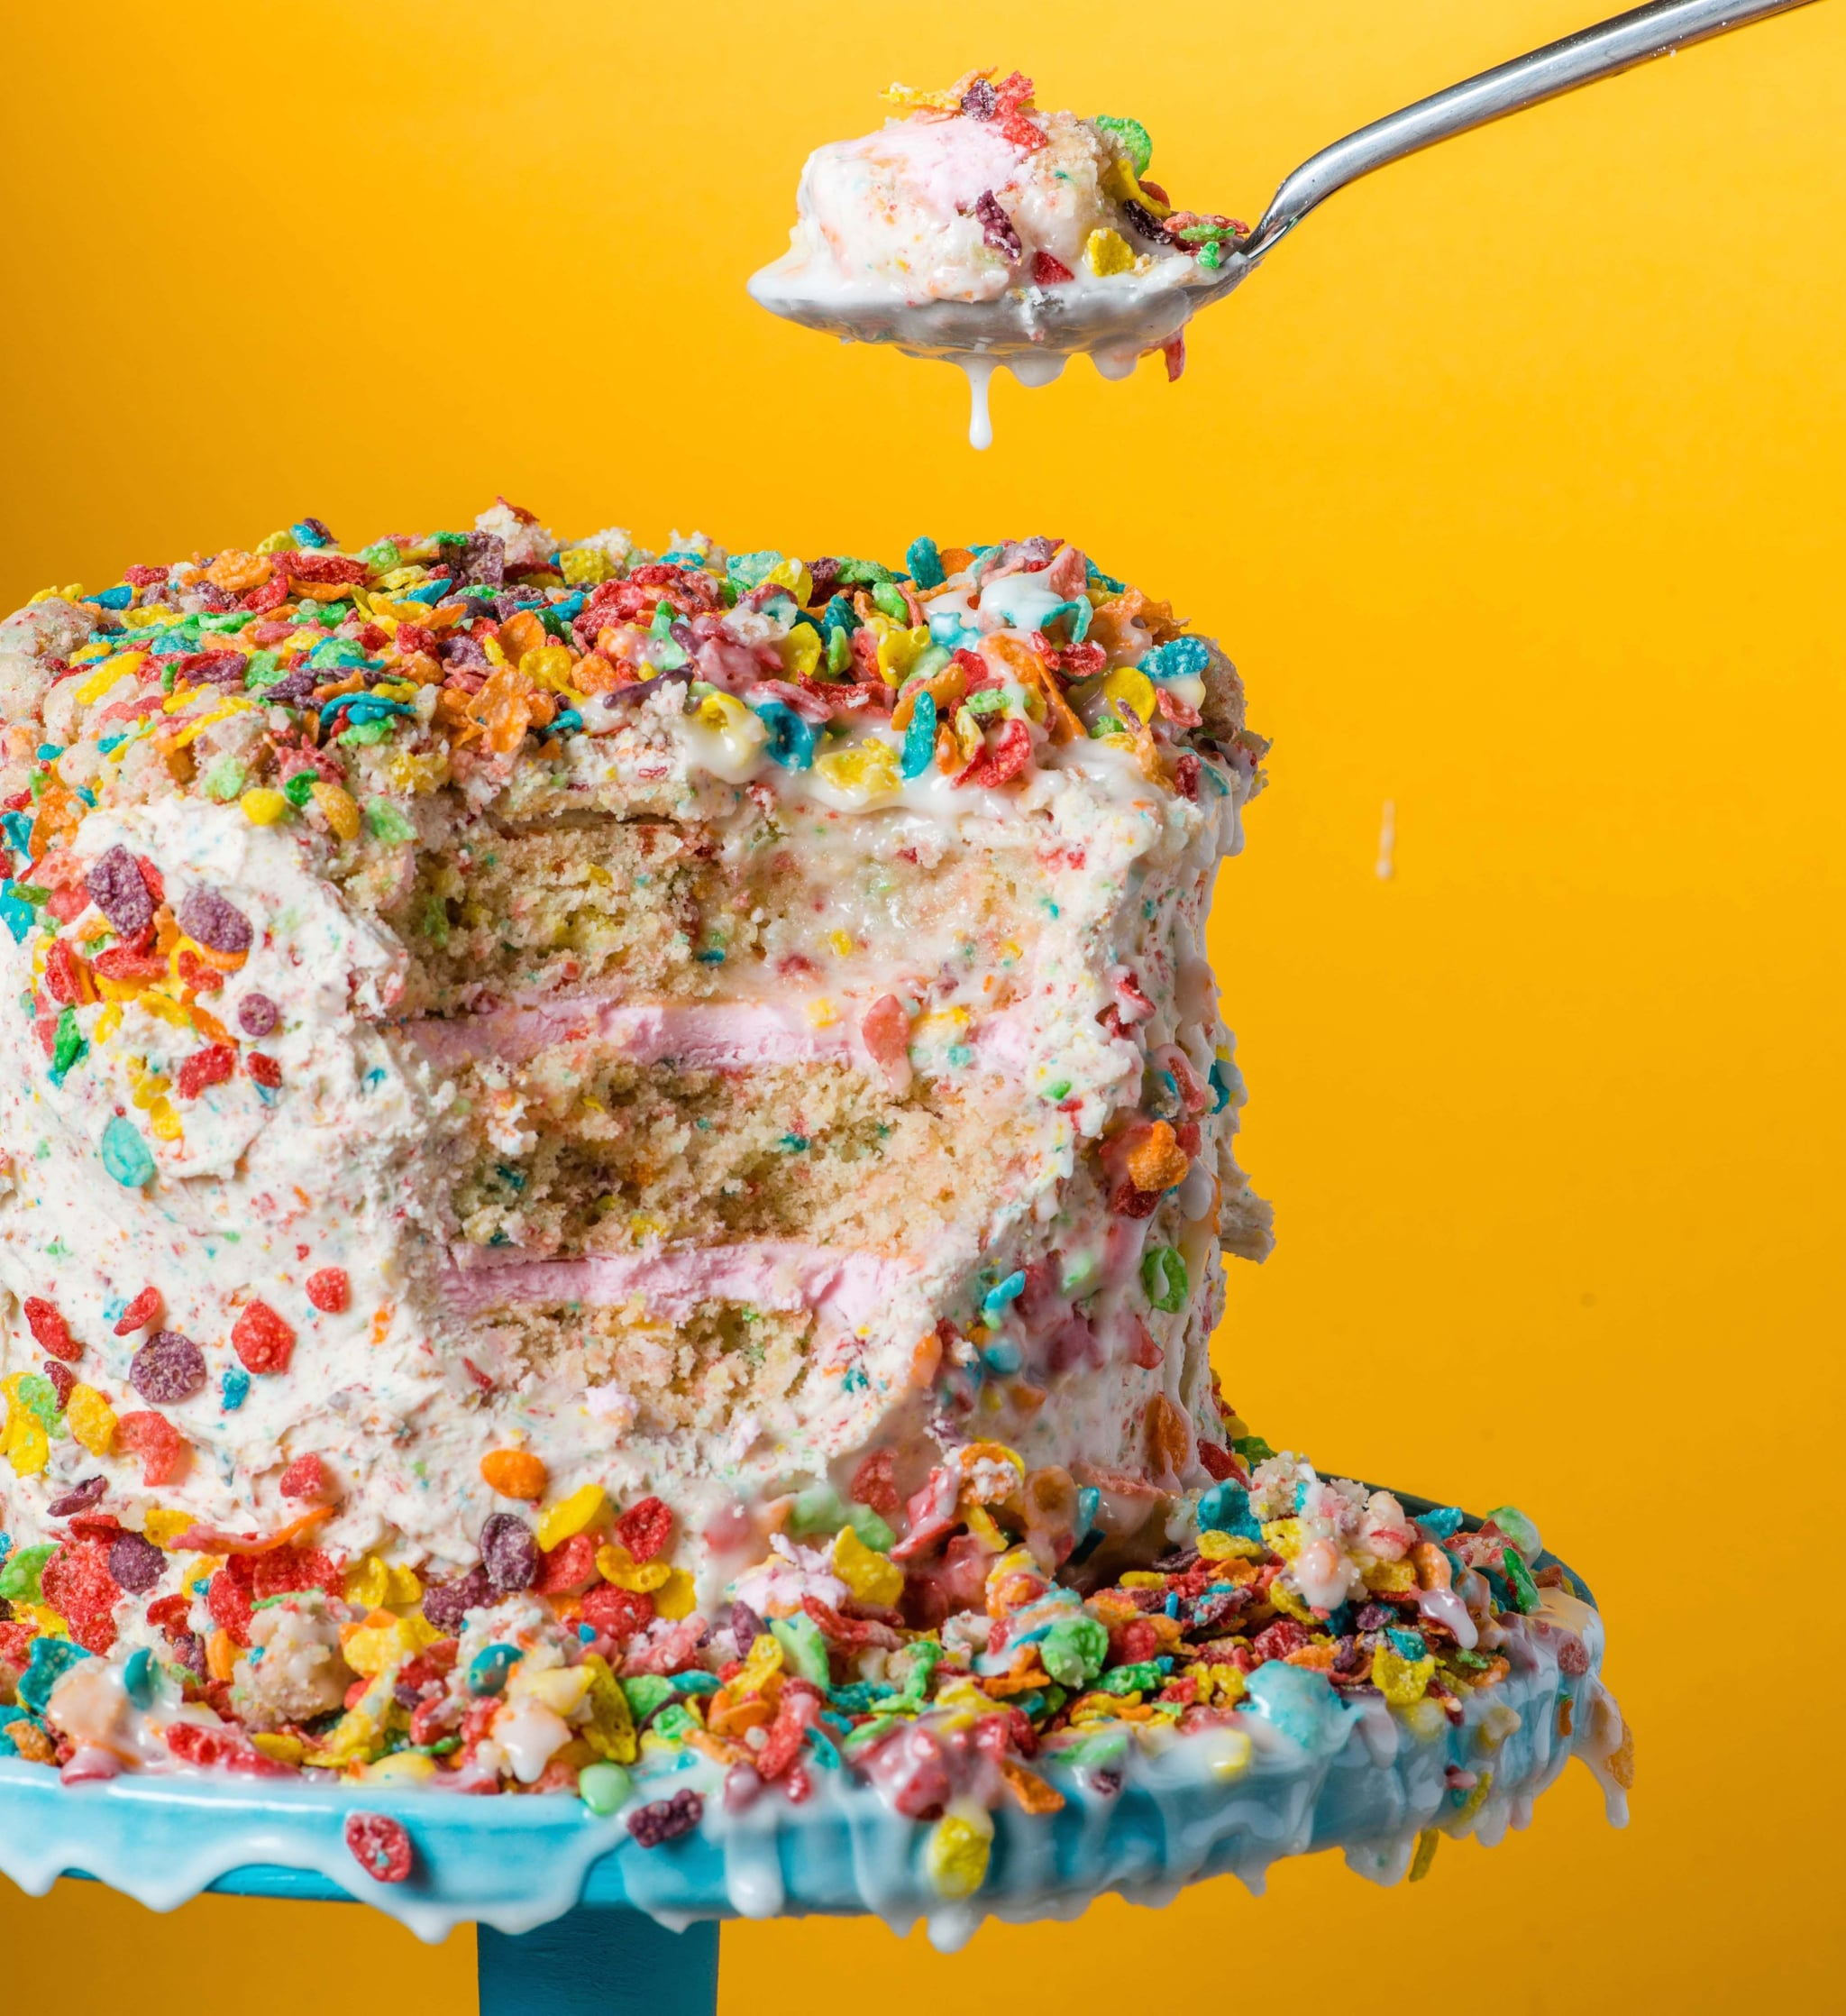 This Fruity Pebbles Cake Is a Whole New Way to Eat Cereal and Milk